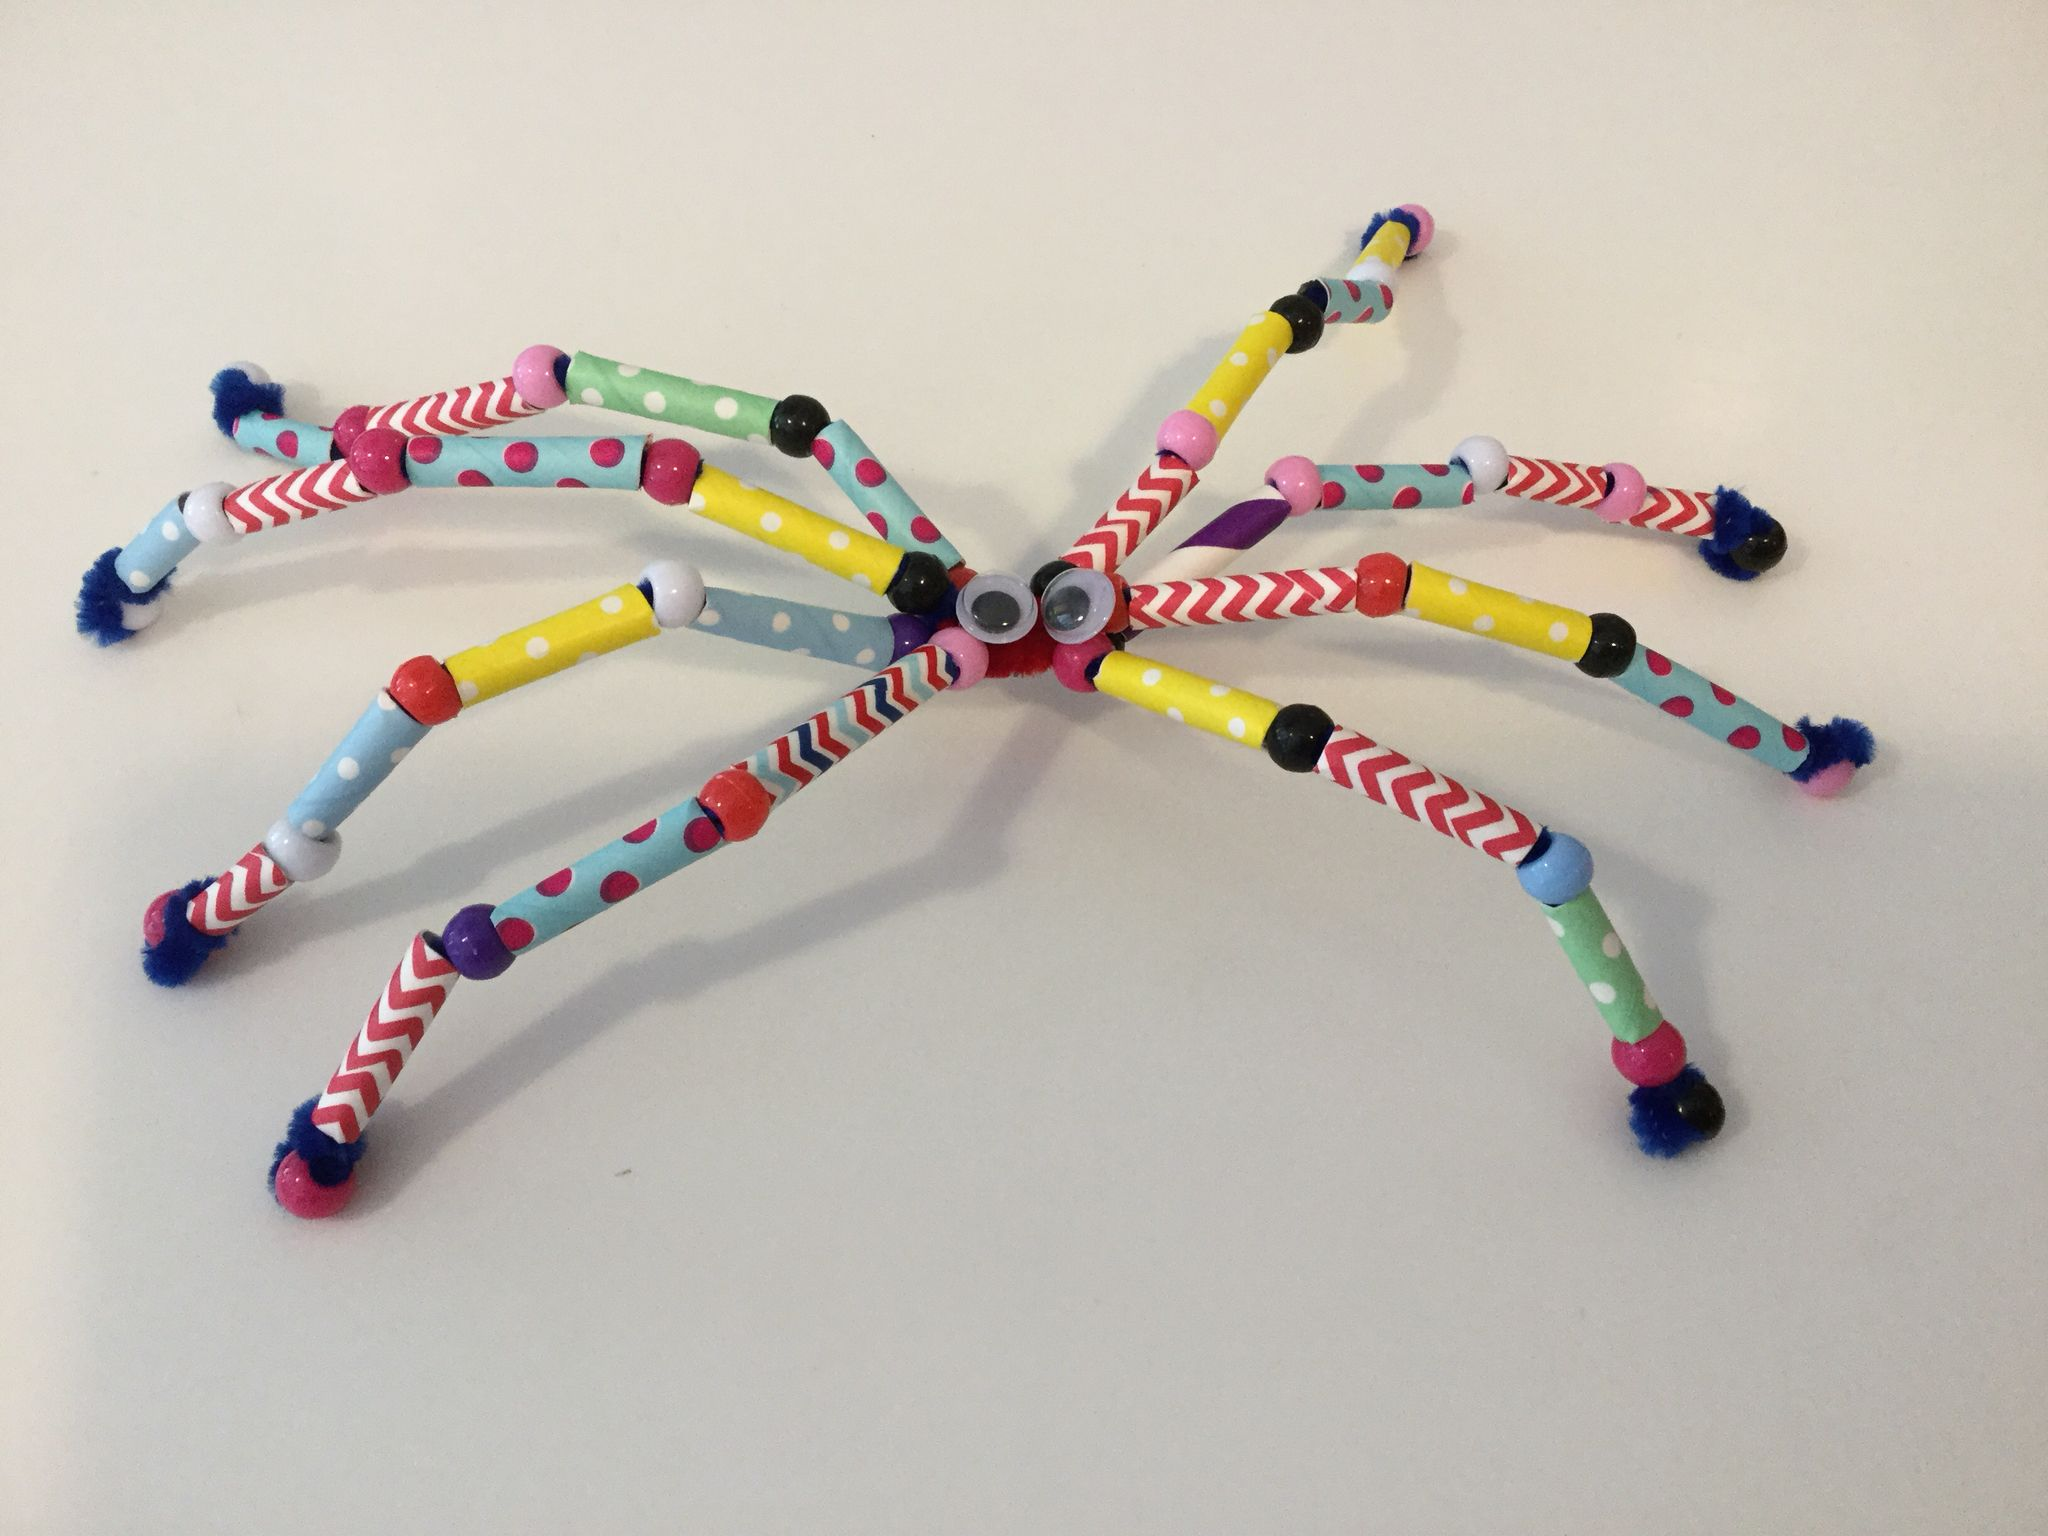 Pipe cleaners arts and crafts - Spider Crafts Made From Pipe Cleaners Paper Straws And Beads